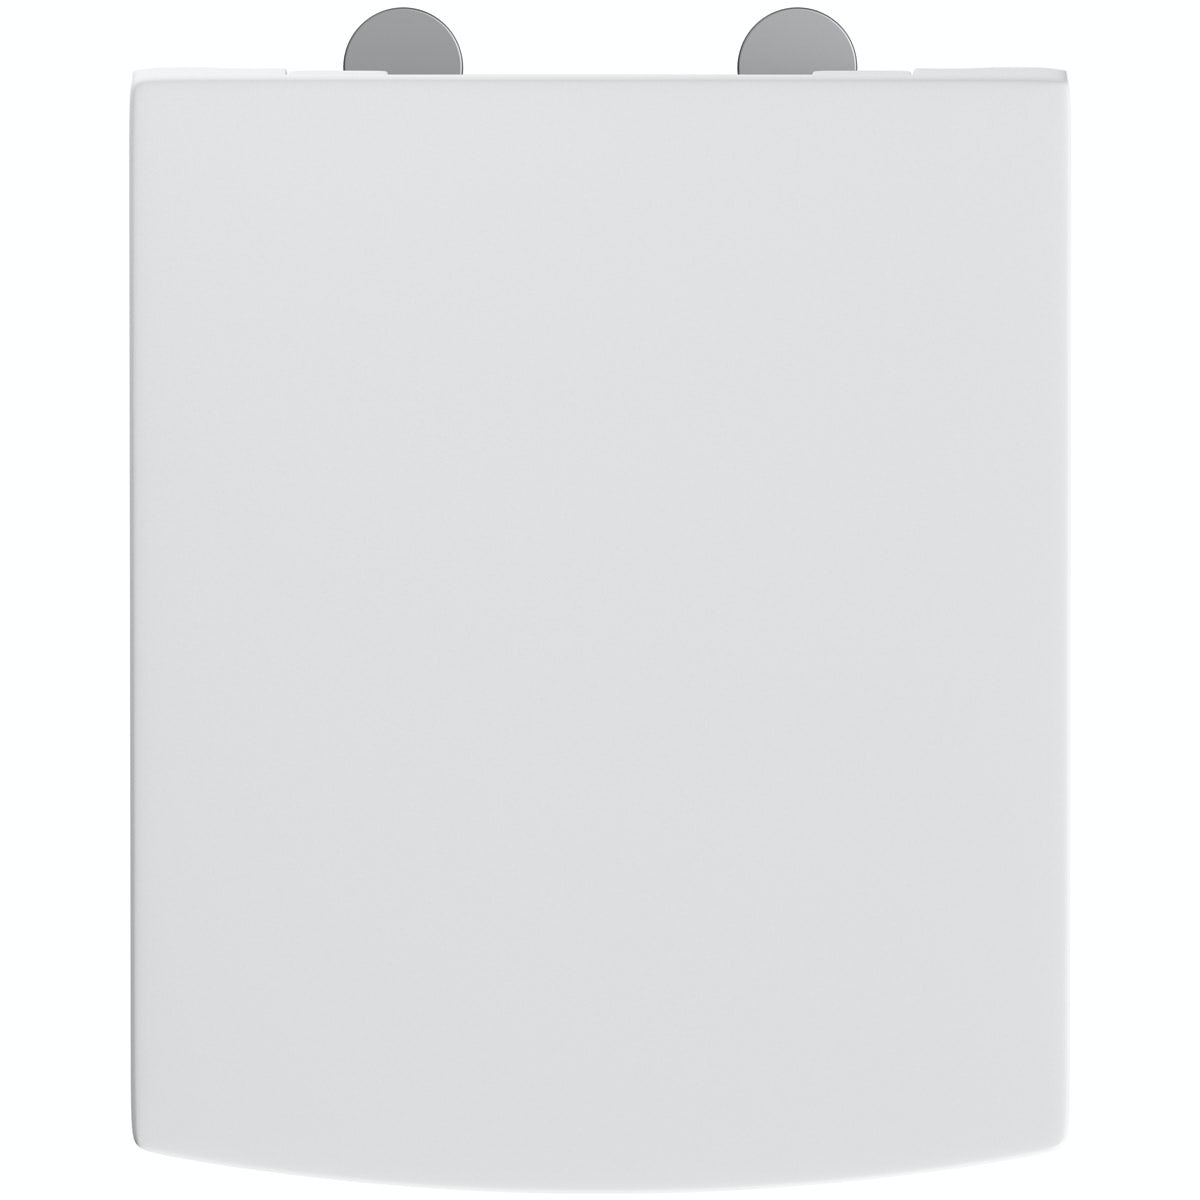 Mode Austin replacement soft close toilet seat